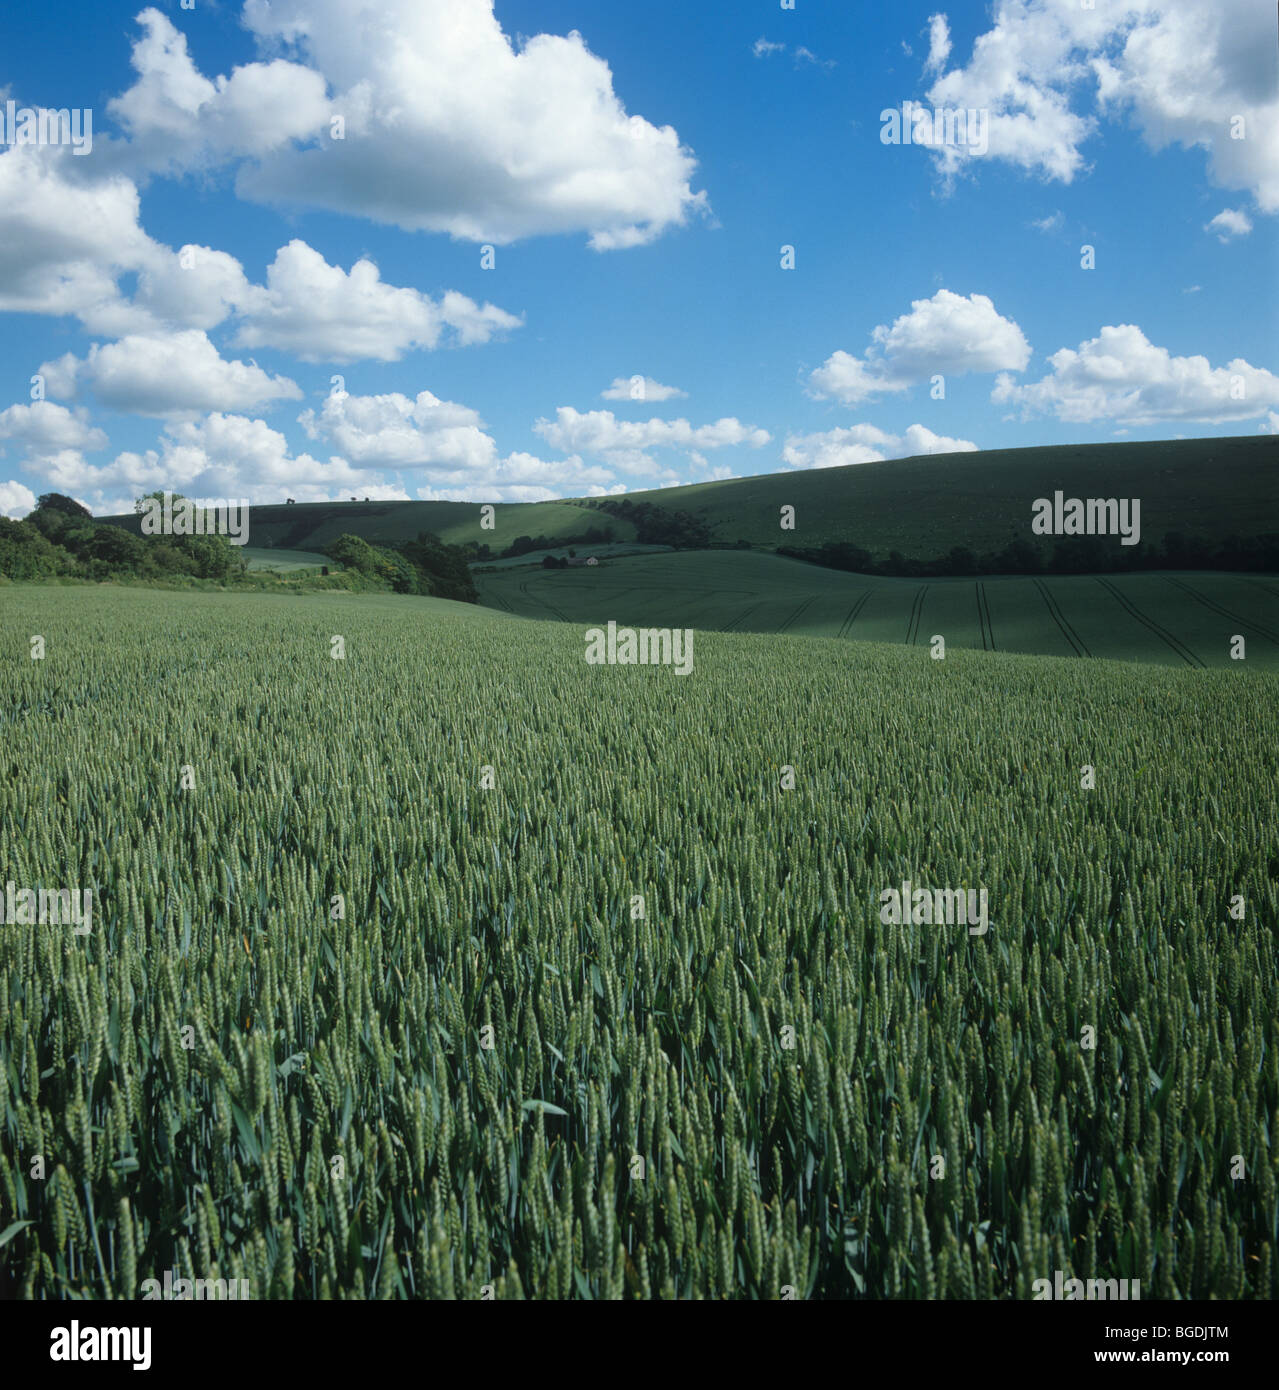 View over wheat crop in ear with fair weather cumulus clouds - Stock Image